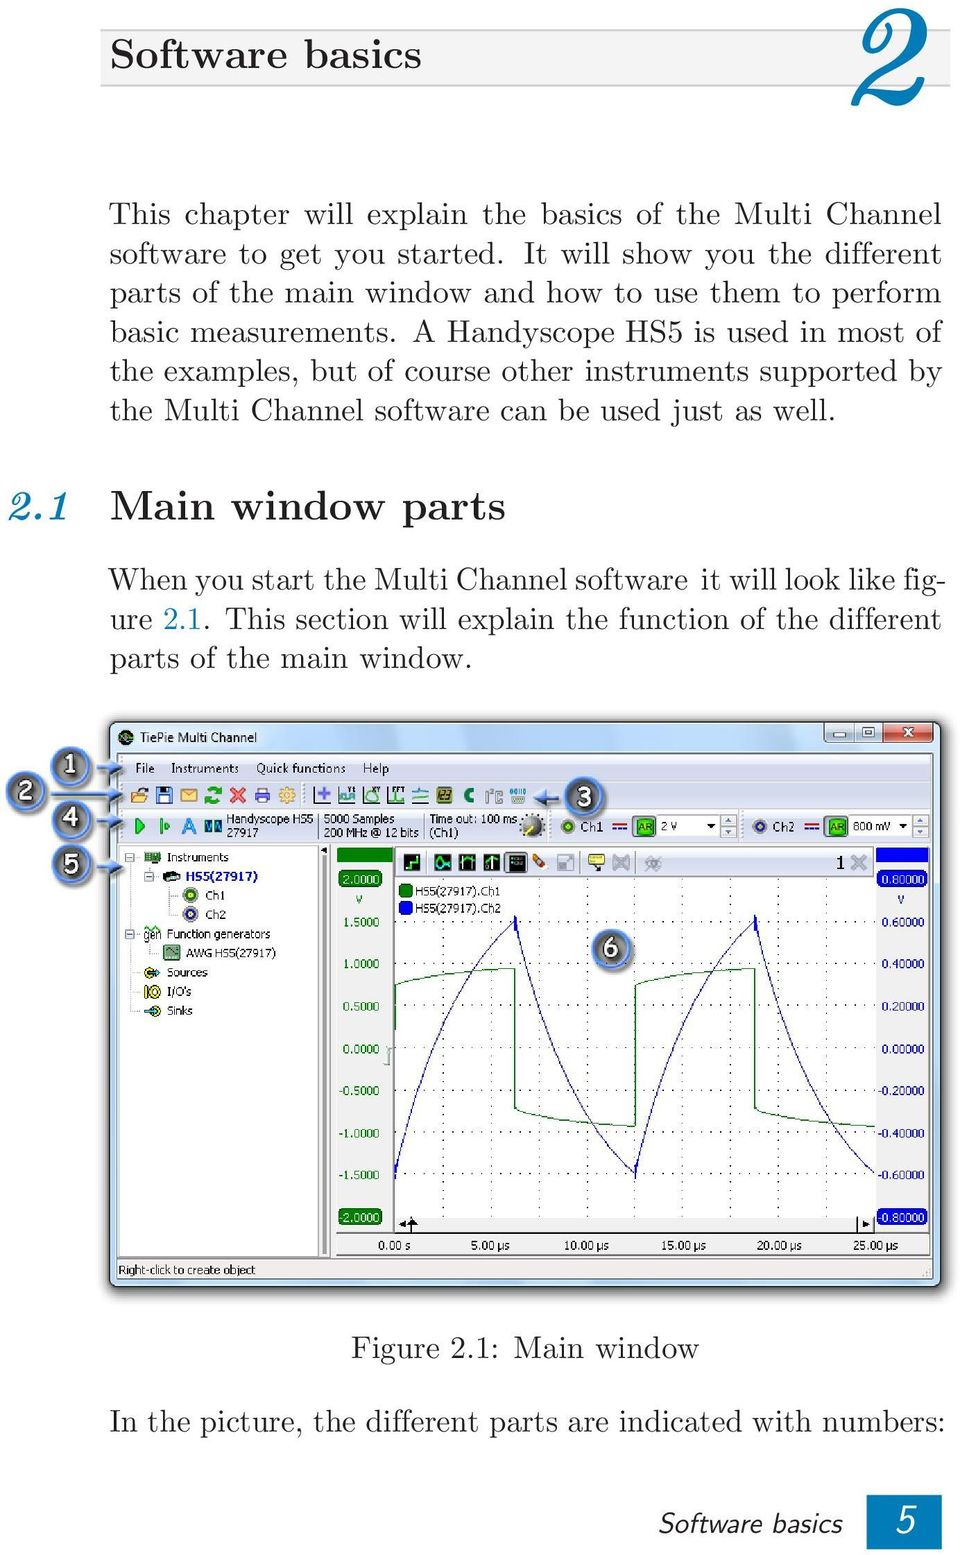 A Handyscope HS5 is used in most of the examples, but of course other instruments supported by the Multi Channel software can be used just as well. 2.